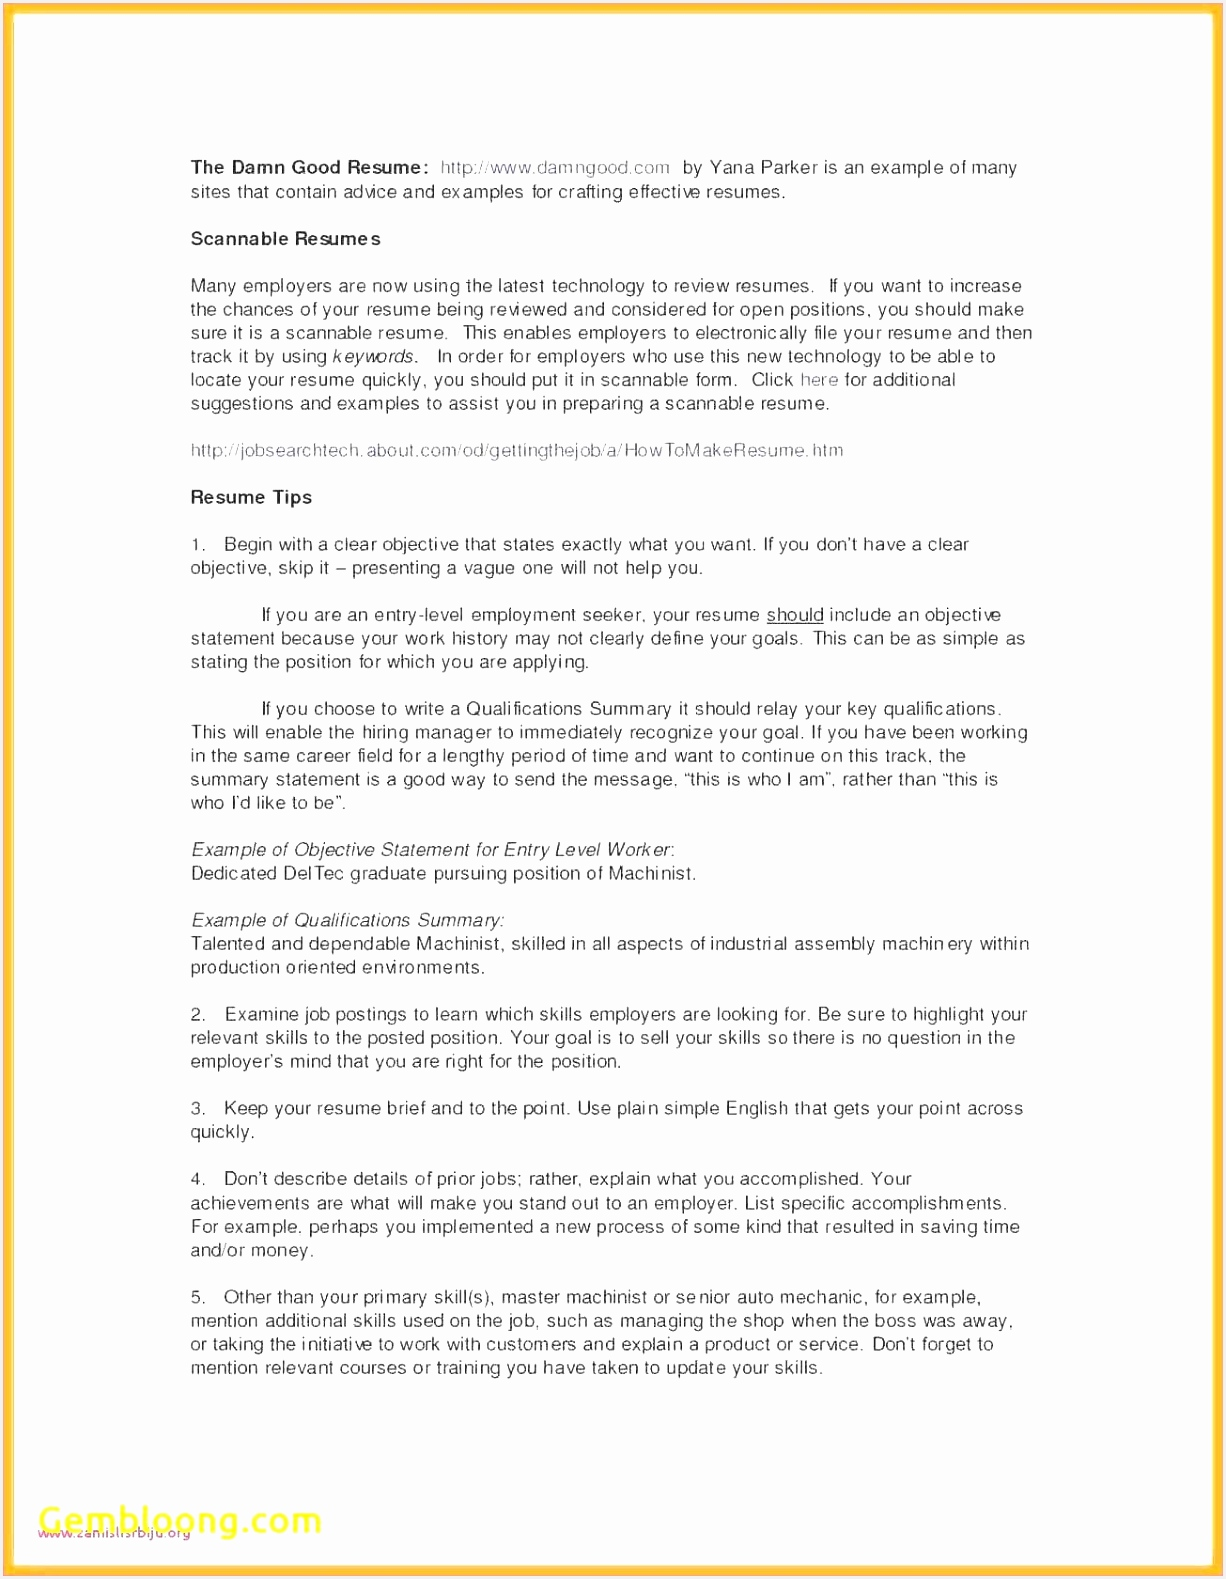 Examples Application Letters for Applications for Teaching Jobs Lovely Standard Cover Letter for Job Application Unique Teacher Cover 157912261pORq